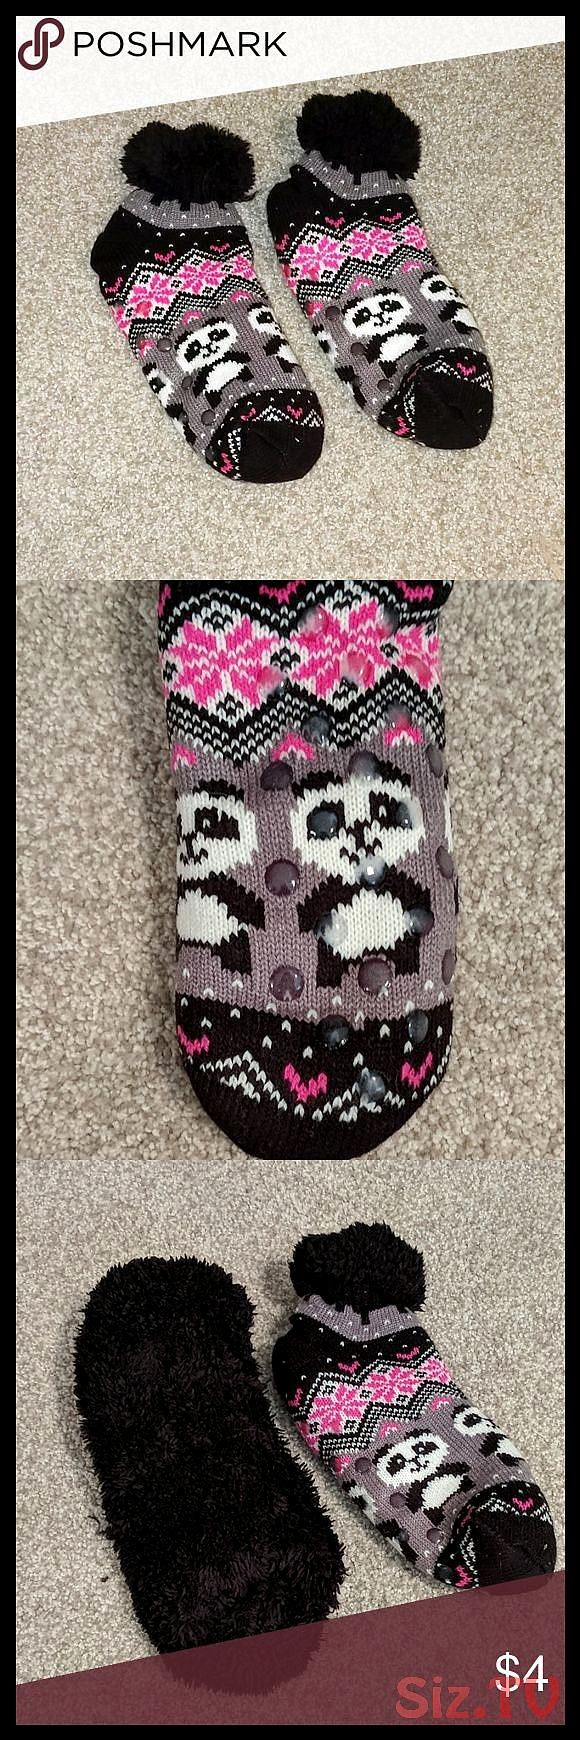 Winter socks one size for juniors Very warm socks for winter Never worn Grip pads on the bottom so you won 39 t slide on hardwood floors black intWinter socks one size fo...